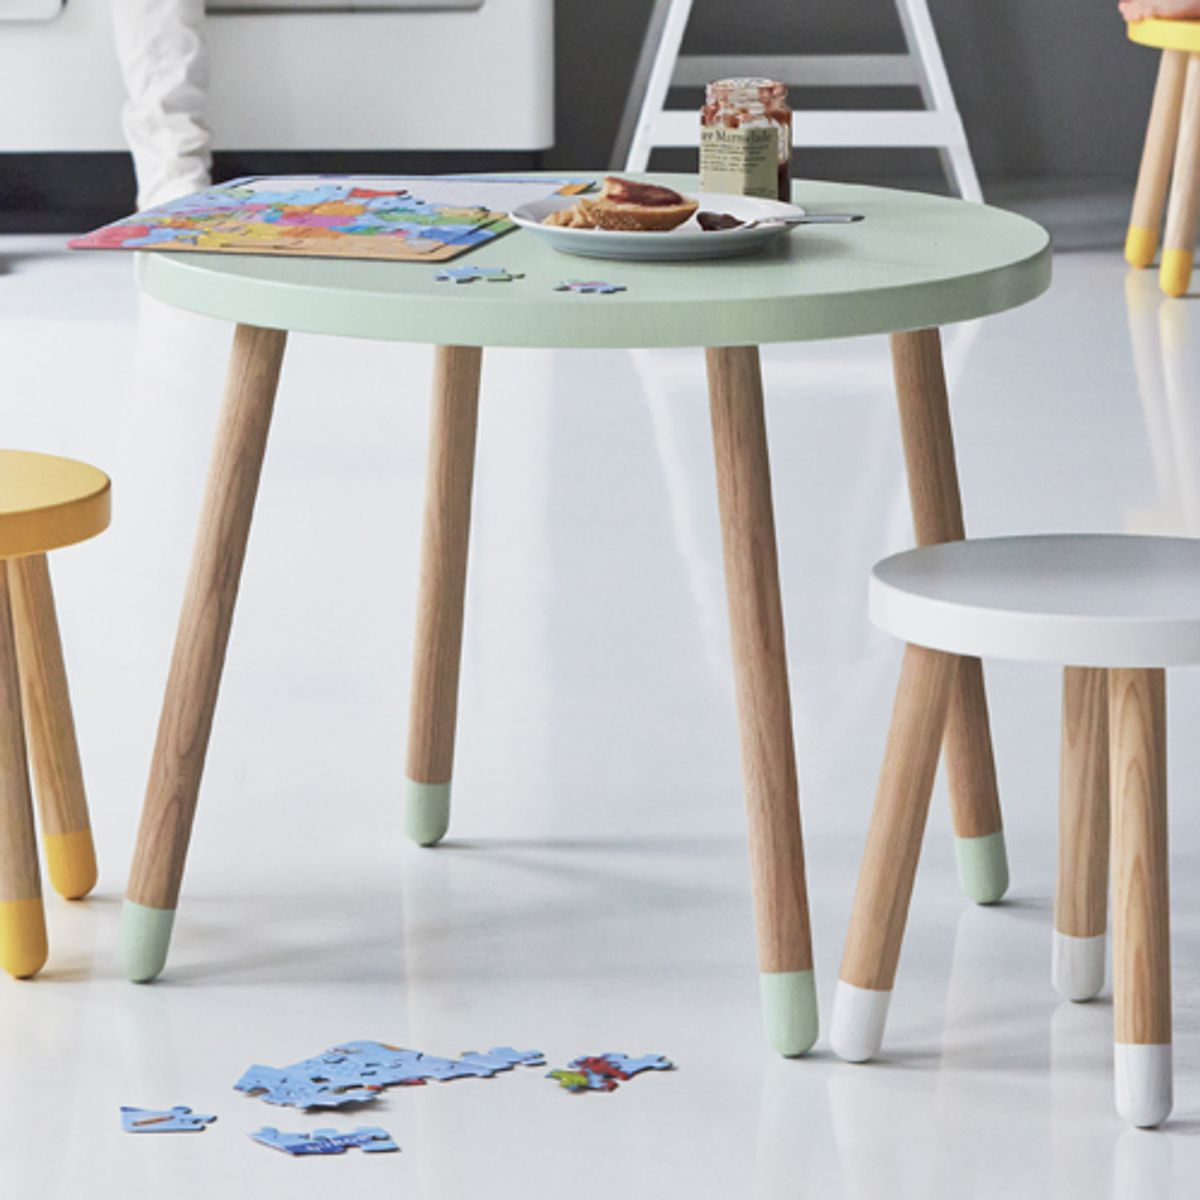 table ronde en bois pour enfant flexa play vert menthe. Black Bedroom Furniture Sets. Home Design Ideas